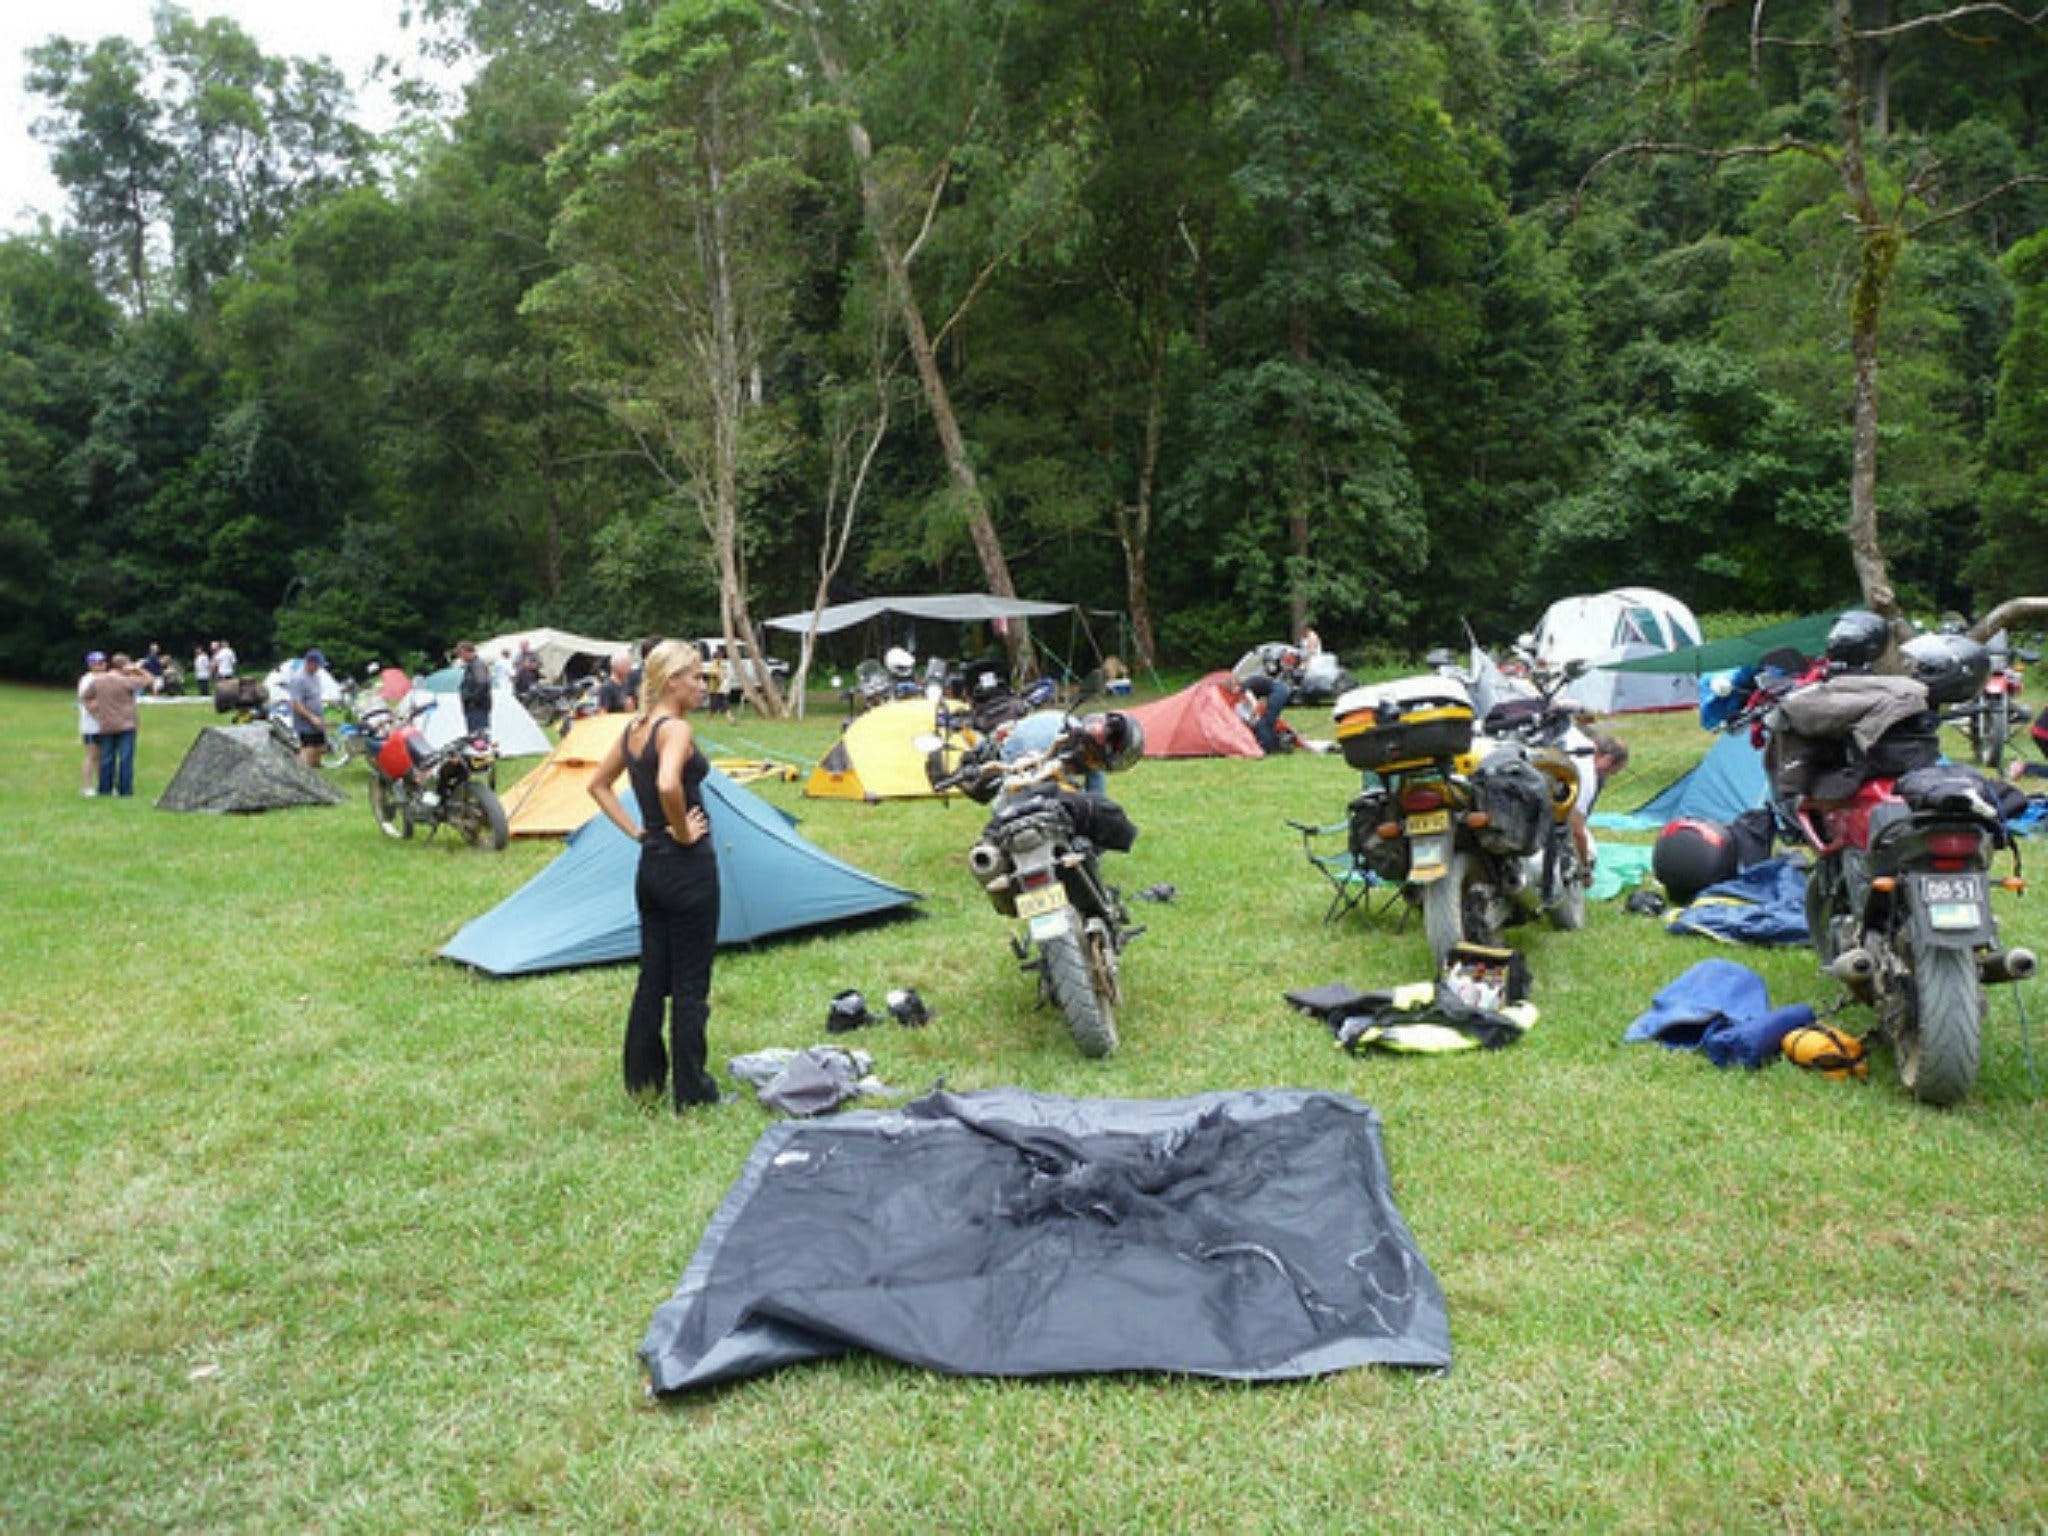 Karuah River Motorcycle Rally - Hotel Accommodation